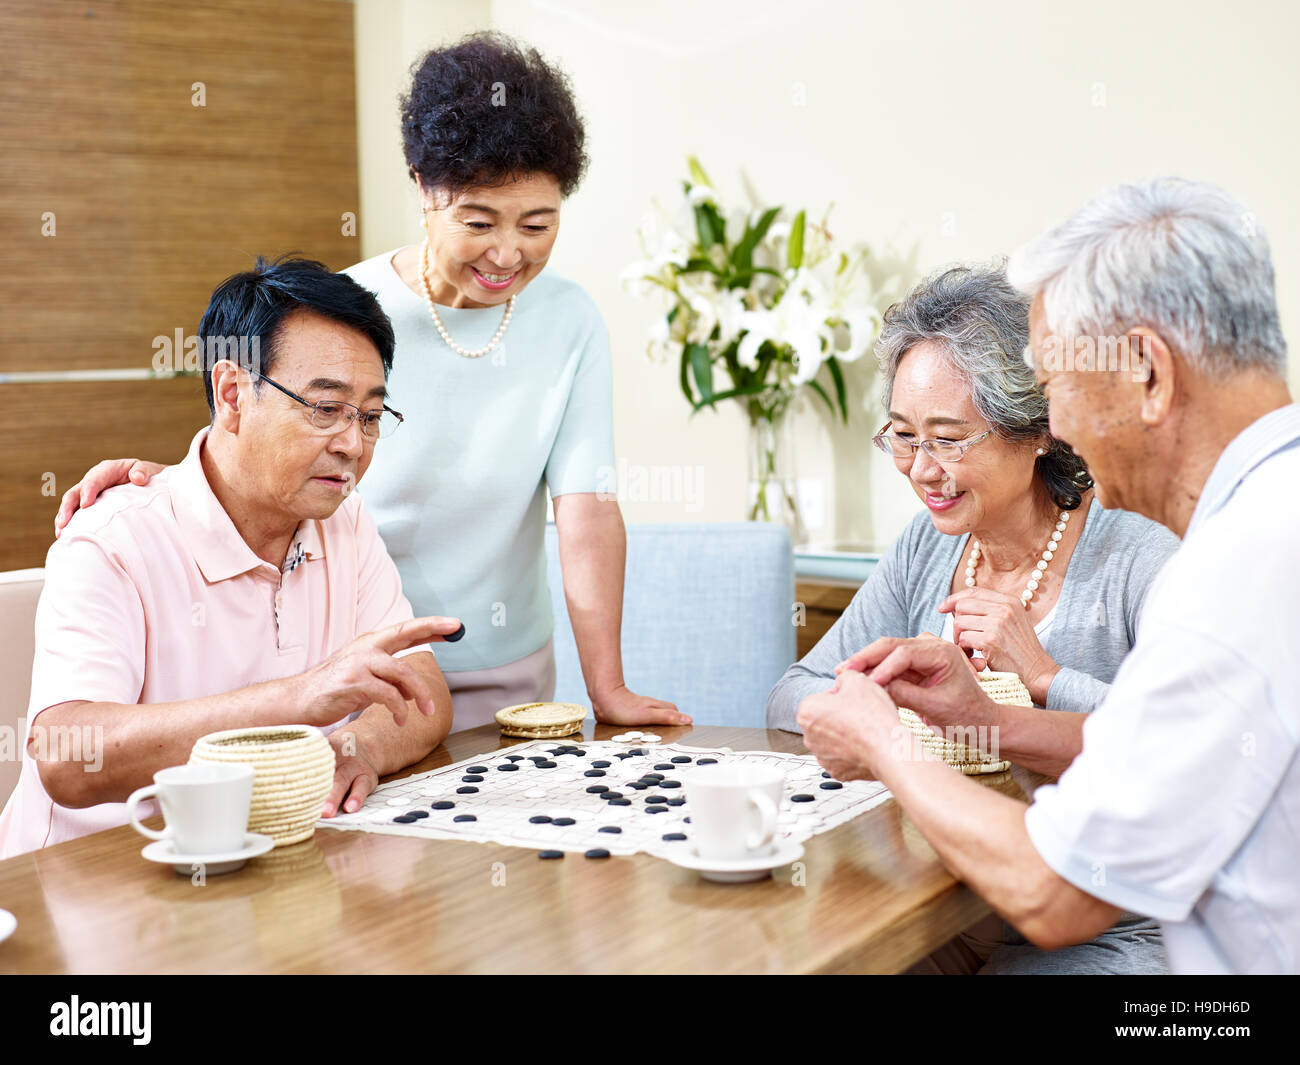 two senior men playing Weiqi (or game of go) at home with their wives watching - Stock Image